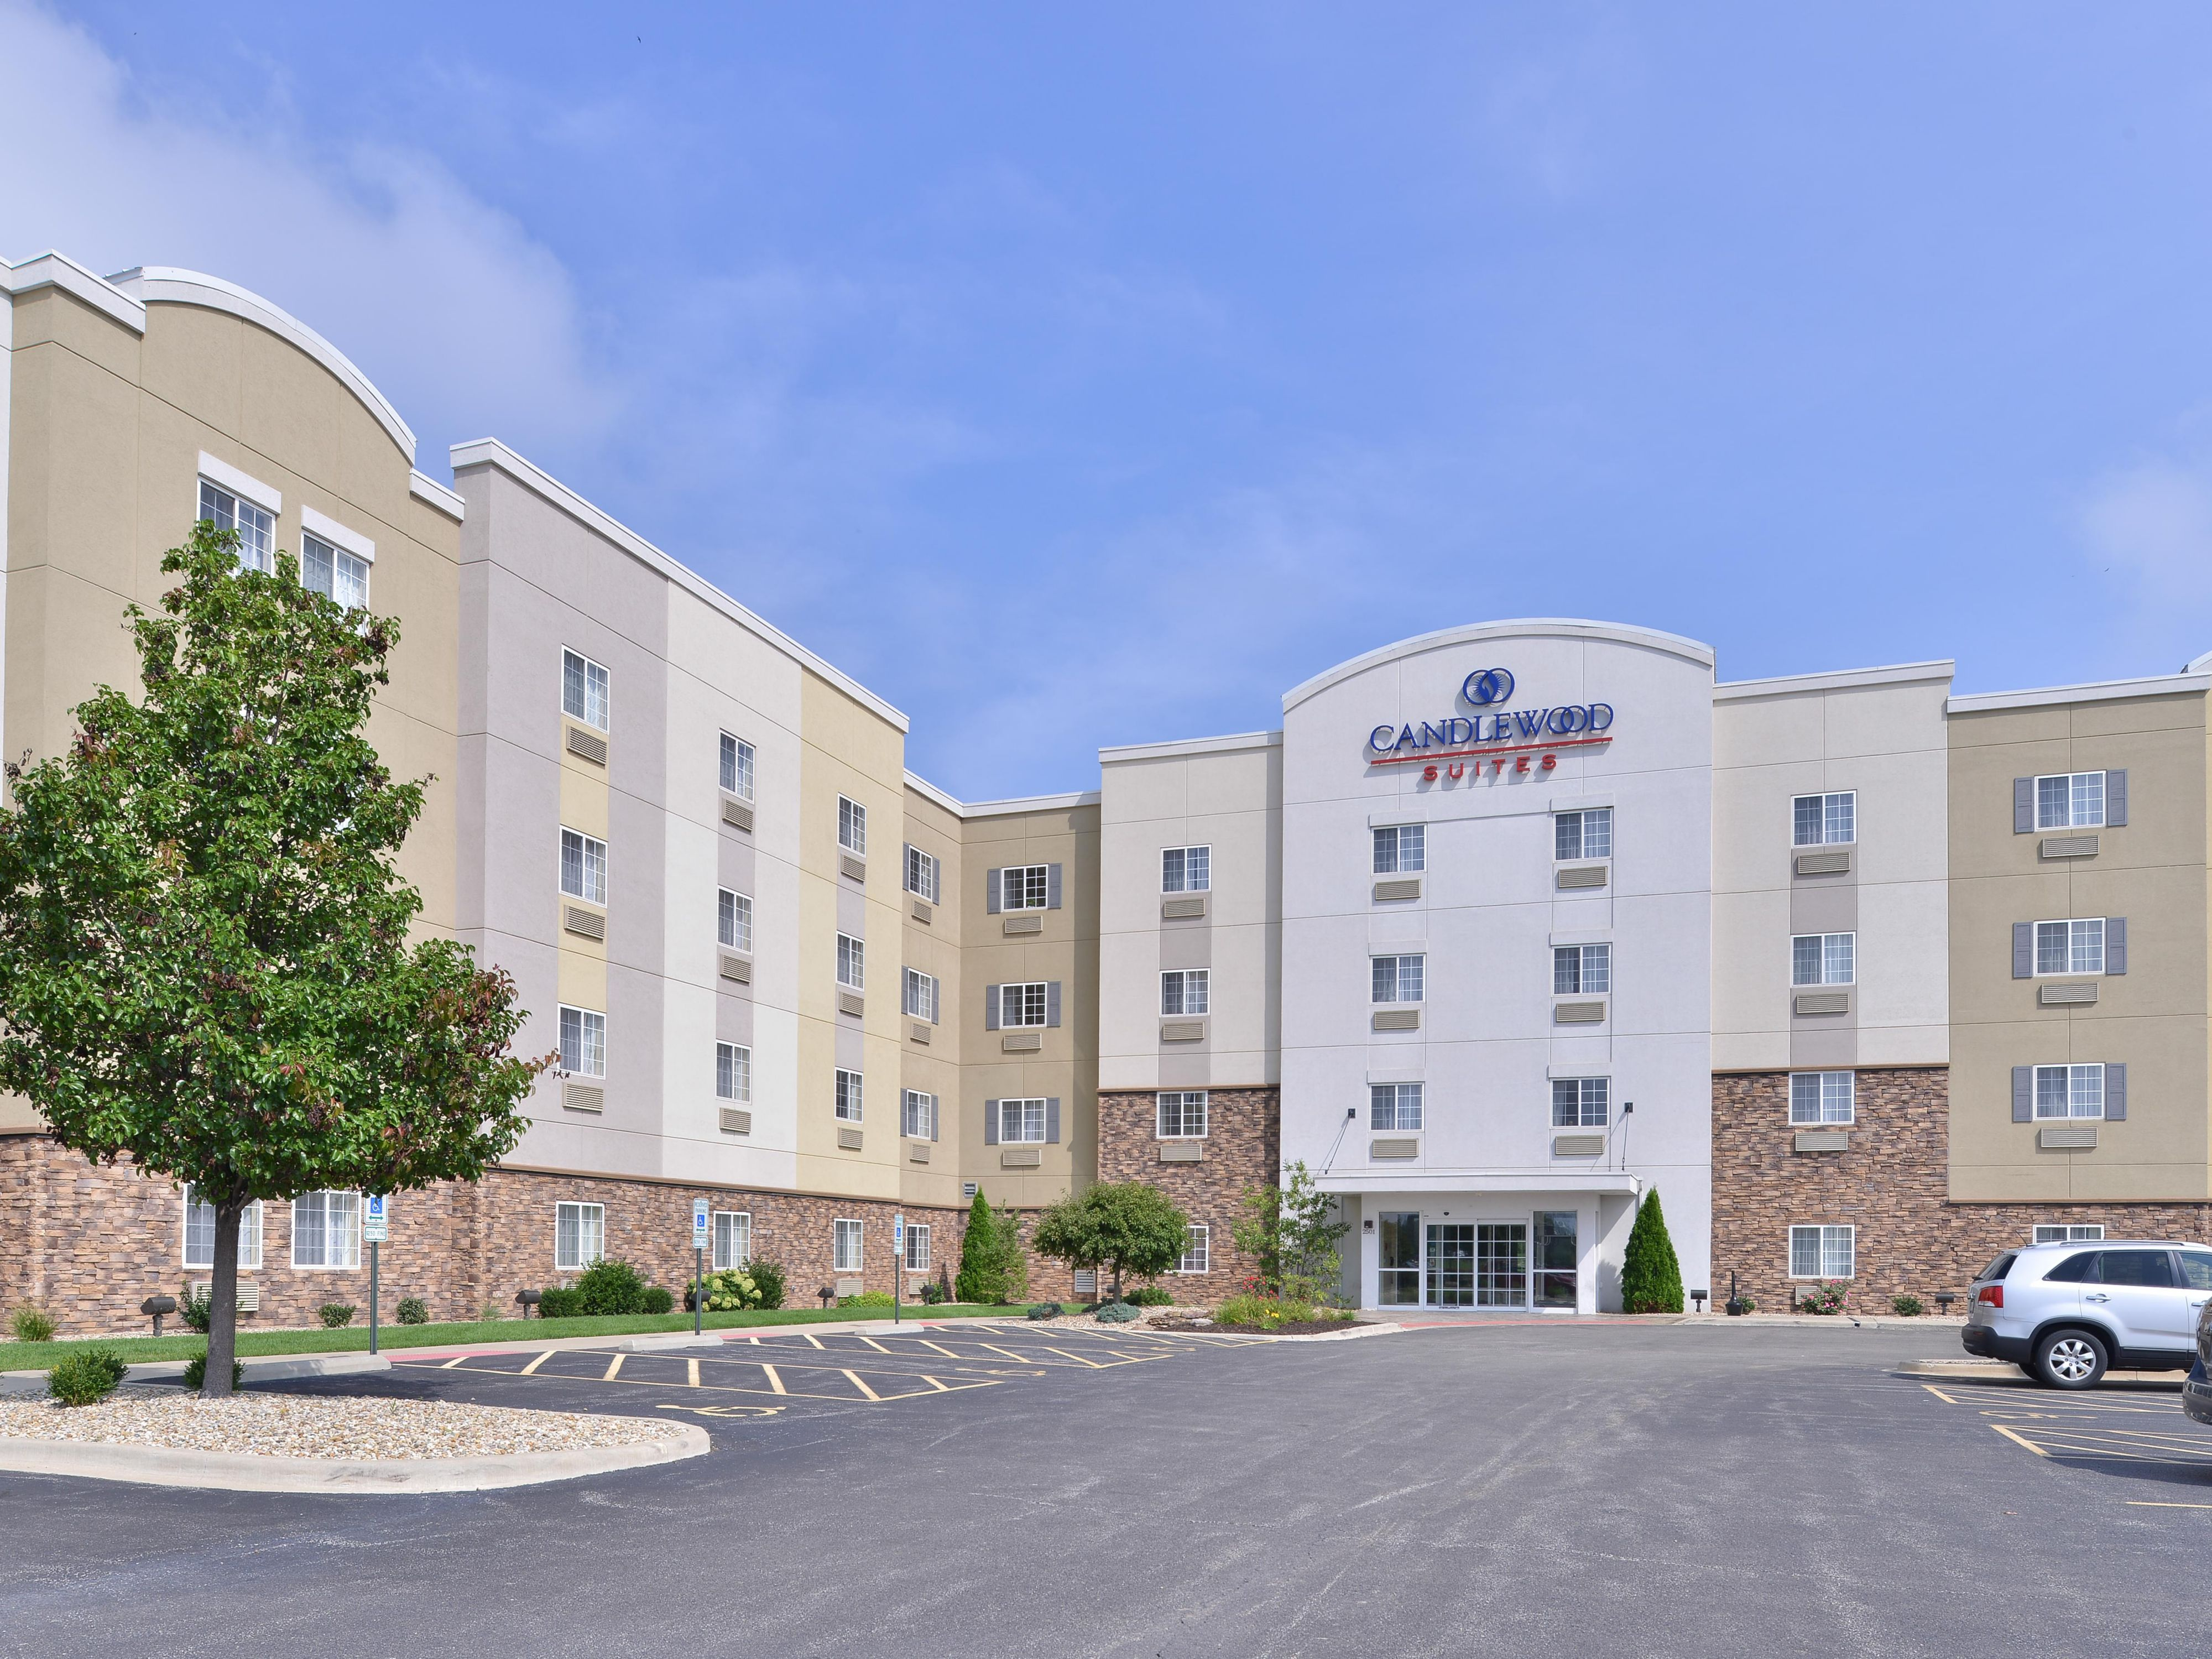 springfield hotels candlewood suites springfield extended stay hotel in springfield illinois - Hilton Garden Inn Springfield Il